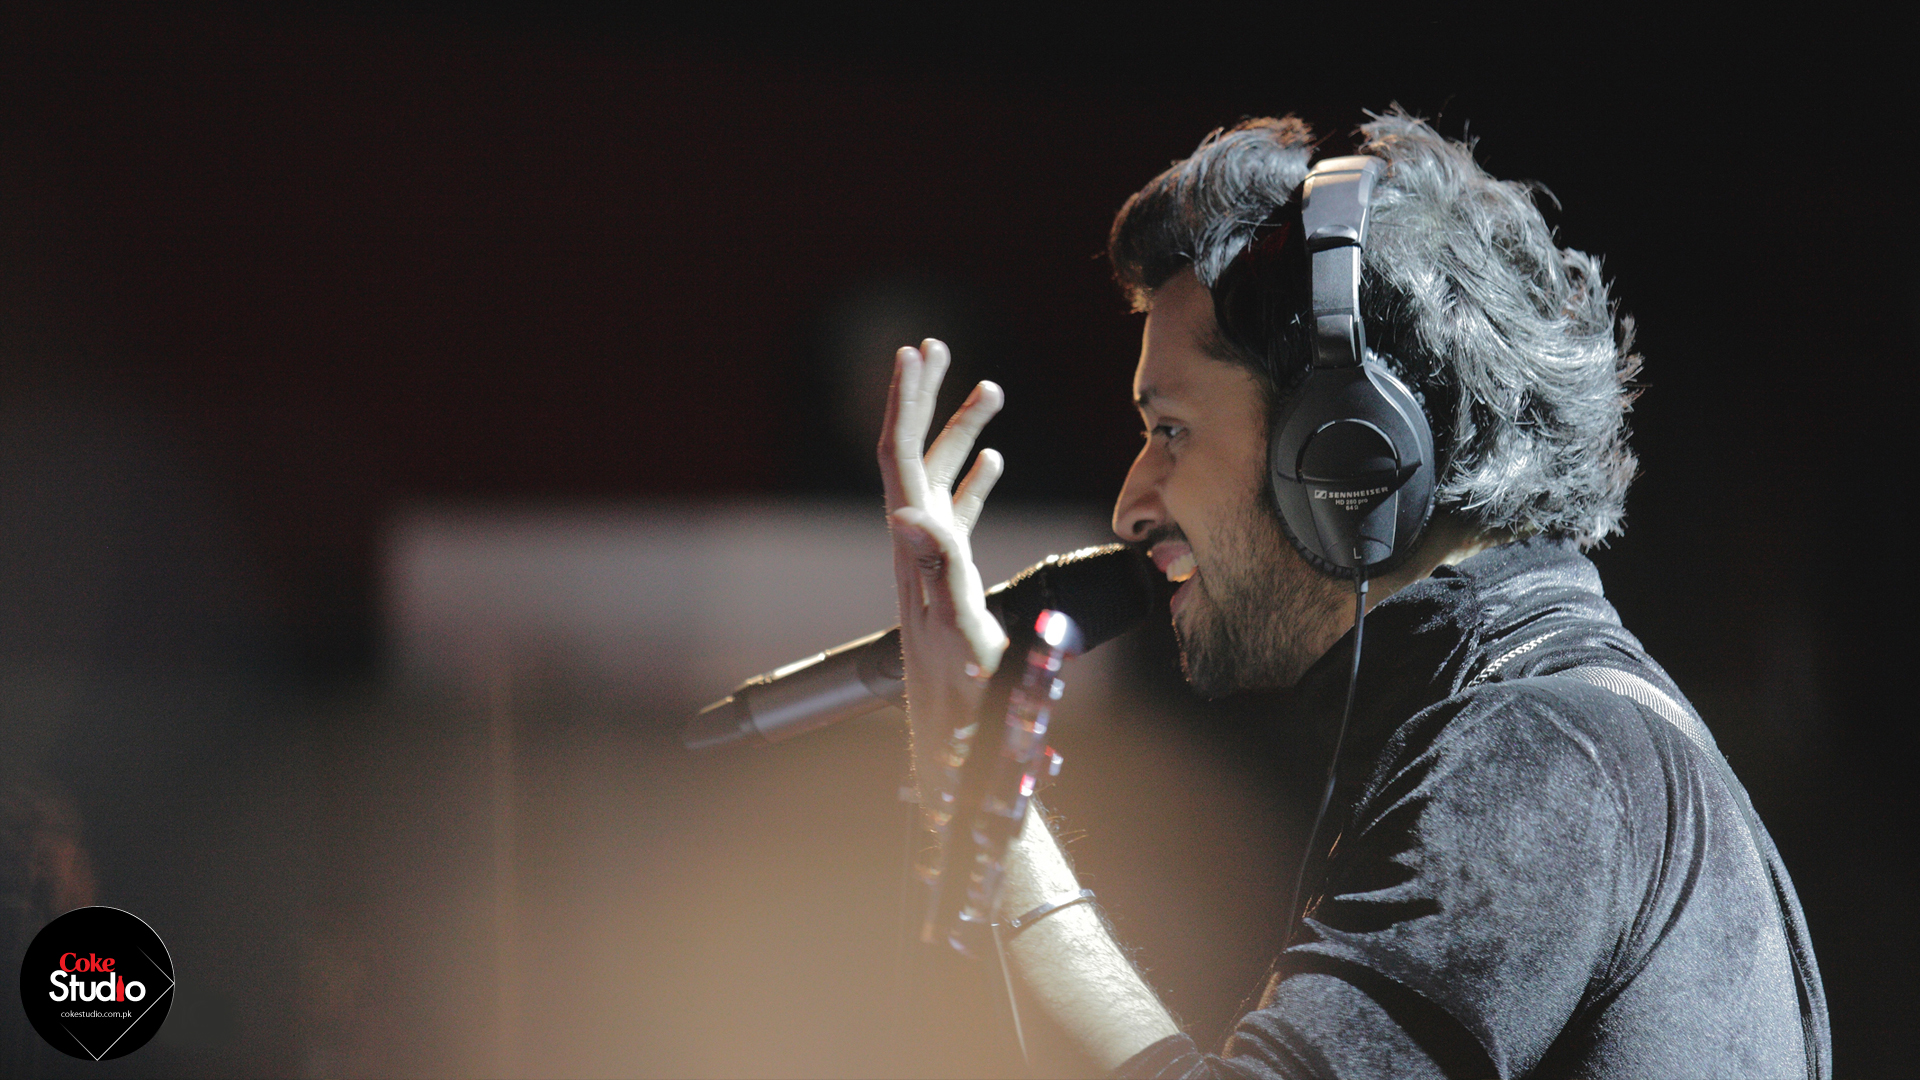 Atif ASlam singing Dholna in Coke Studio